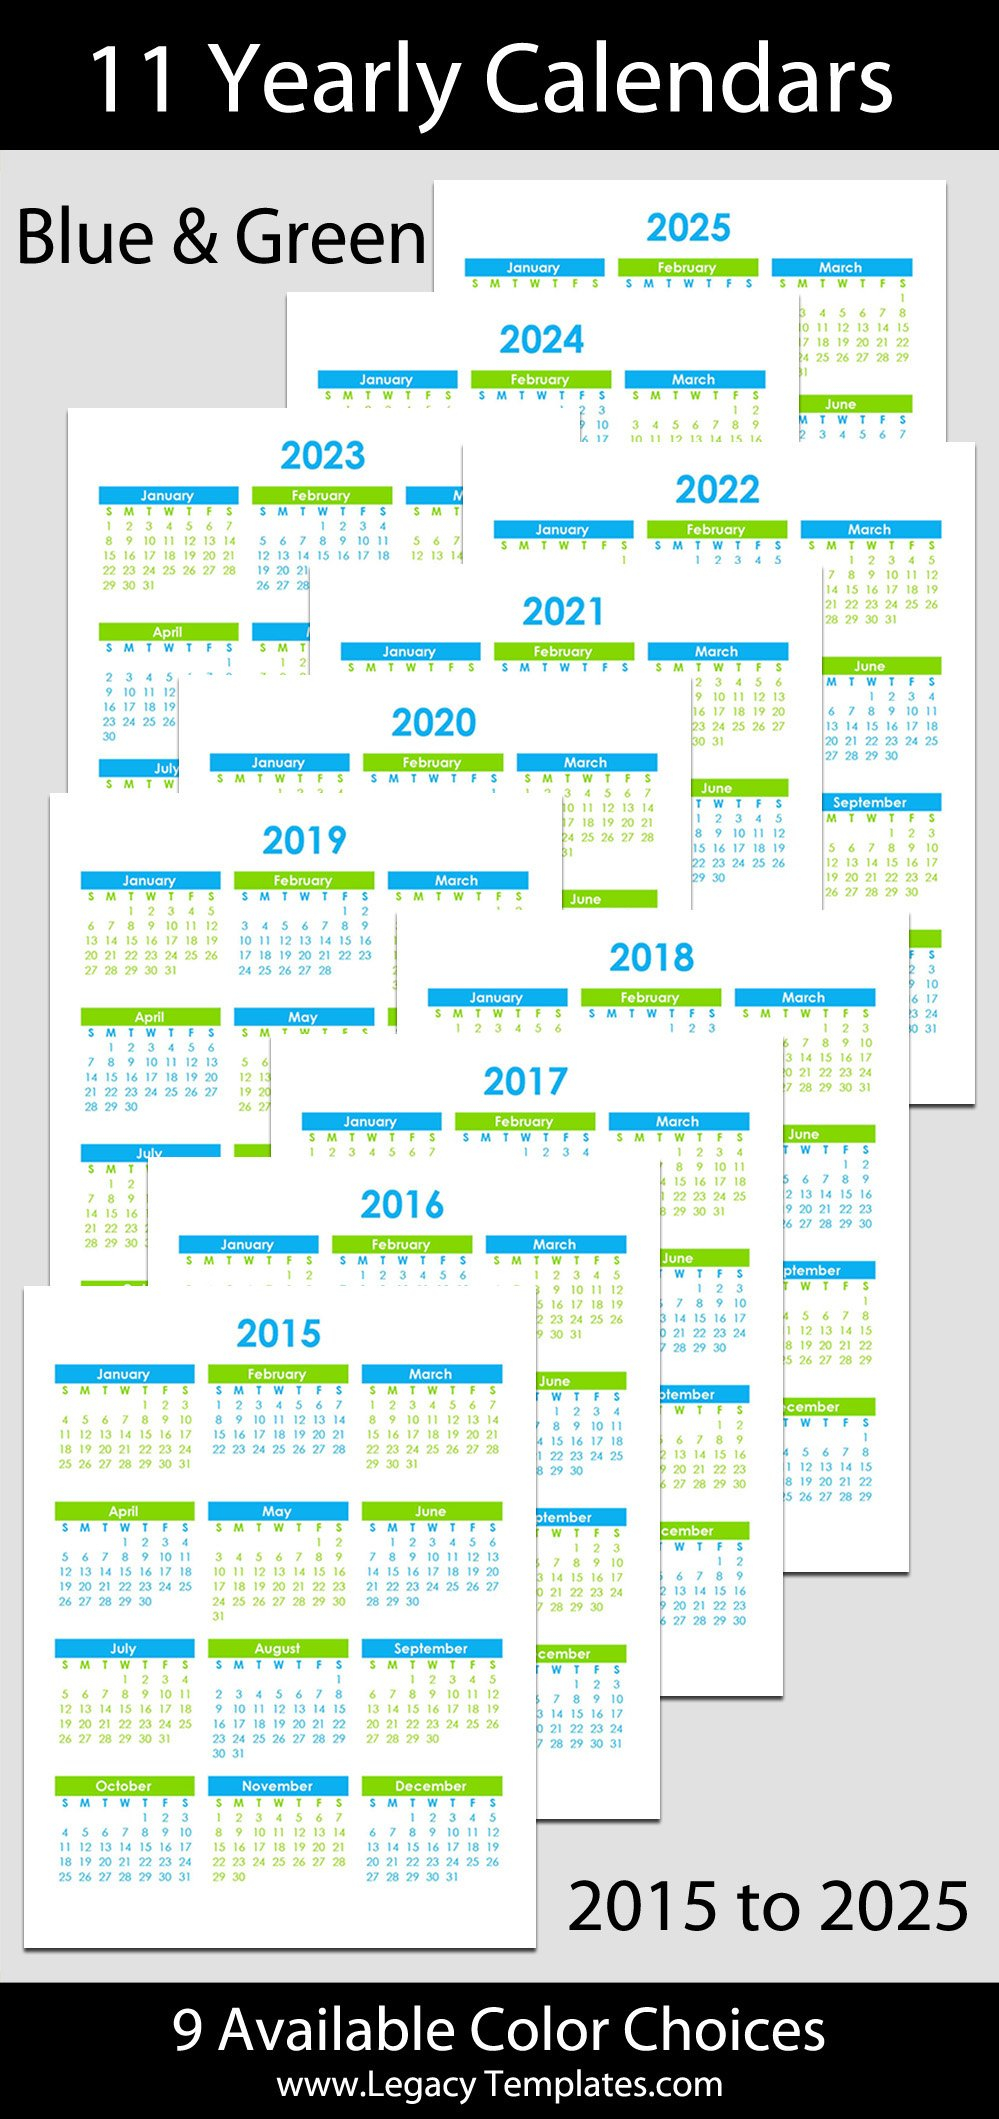 """2015 To 2025 Yearly Calendar - 8 1/2"""" X 11"""" 